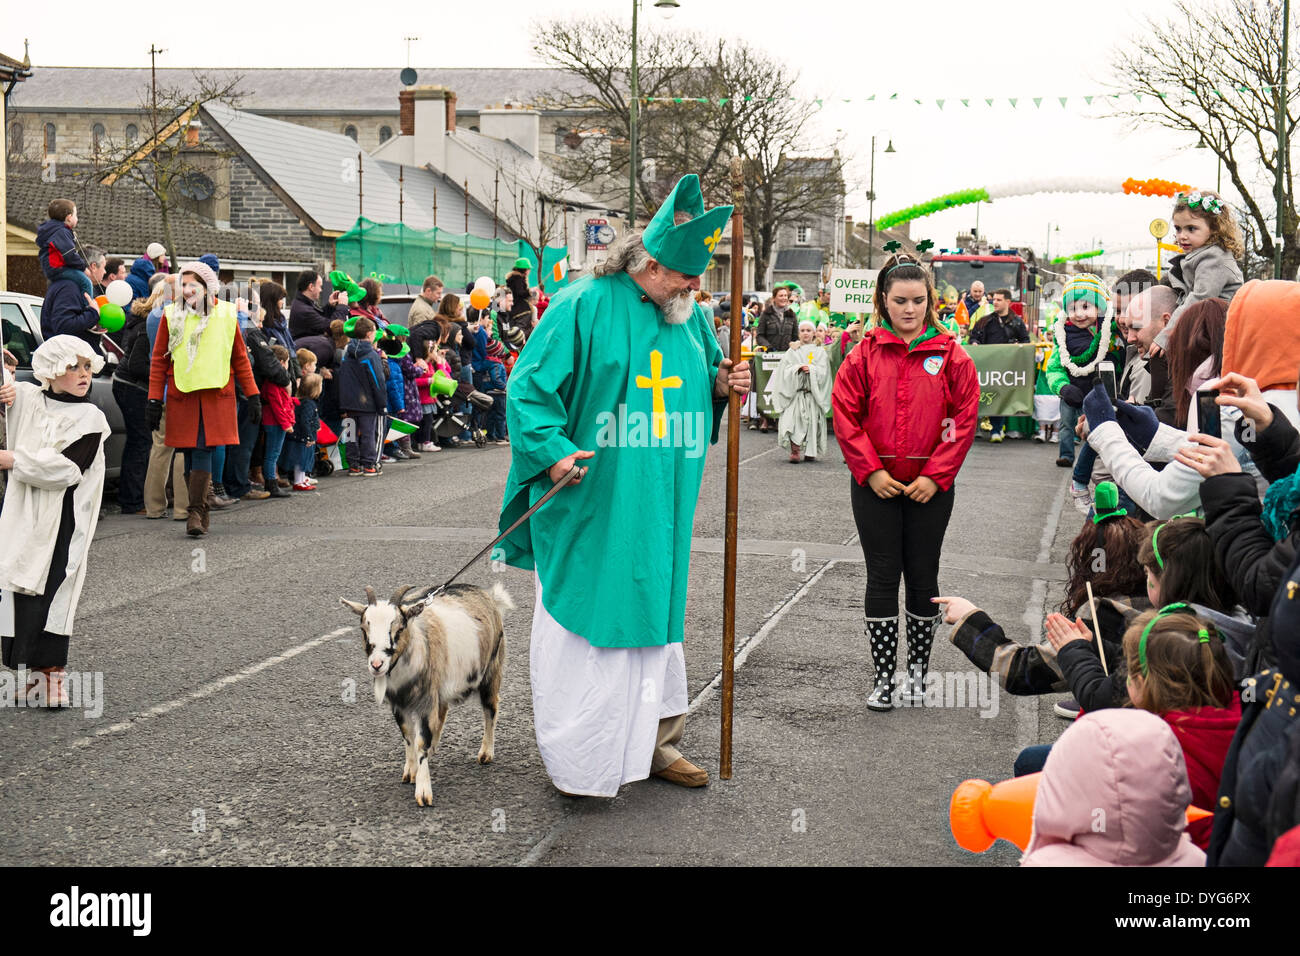 St Patrick's Day parade - Patrick with his goat. Local legend in Skerries,  Dublin, Ireland says the villagers ate his goat - Stock Image